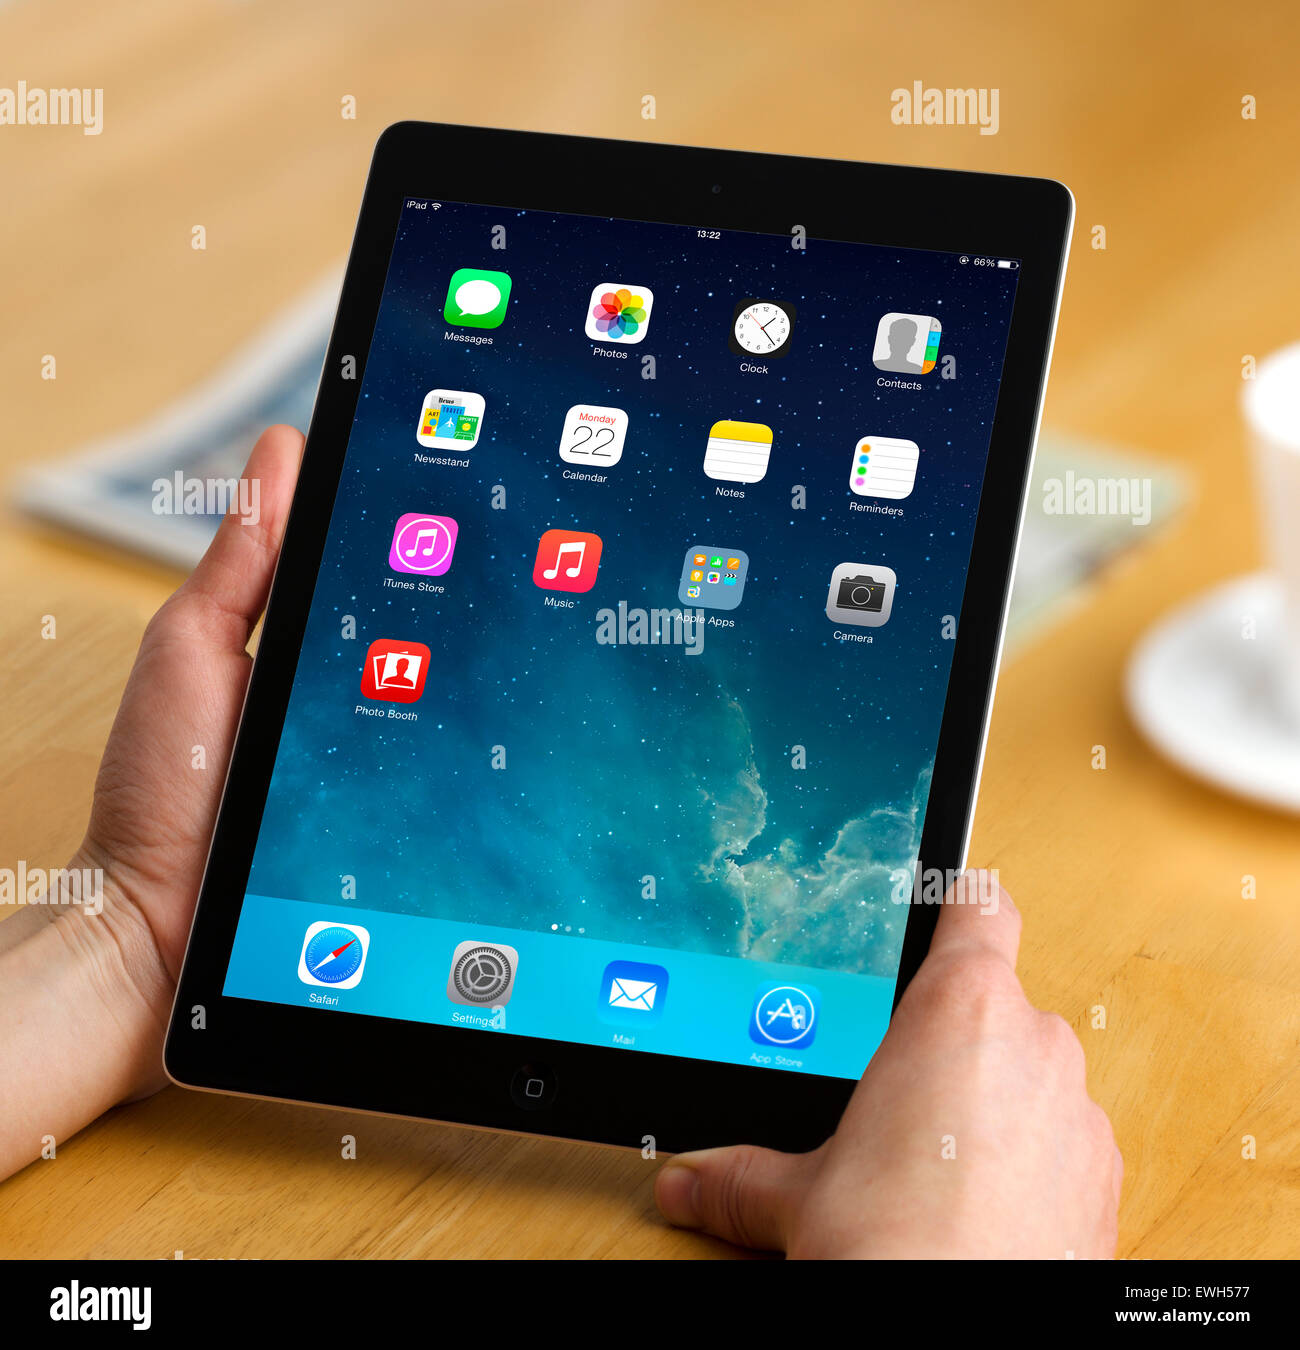 Looking at the home screen on an Apple iPad Air tablet computer - Stock Image